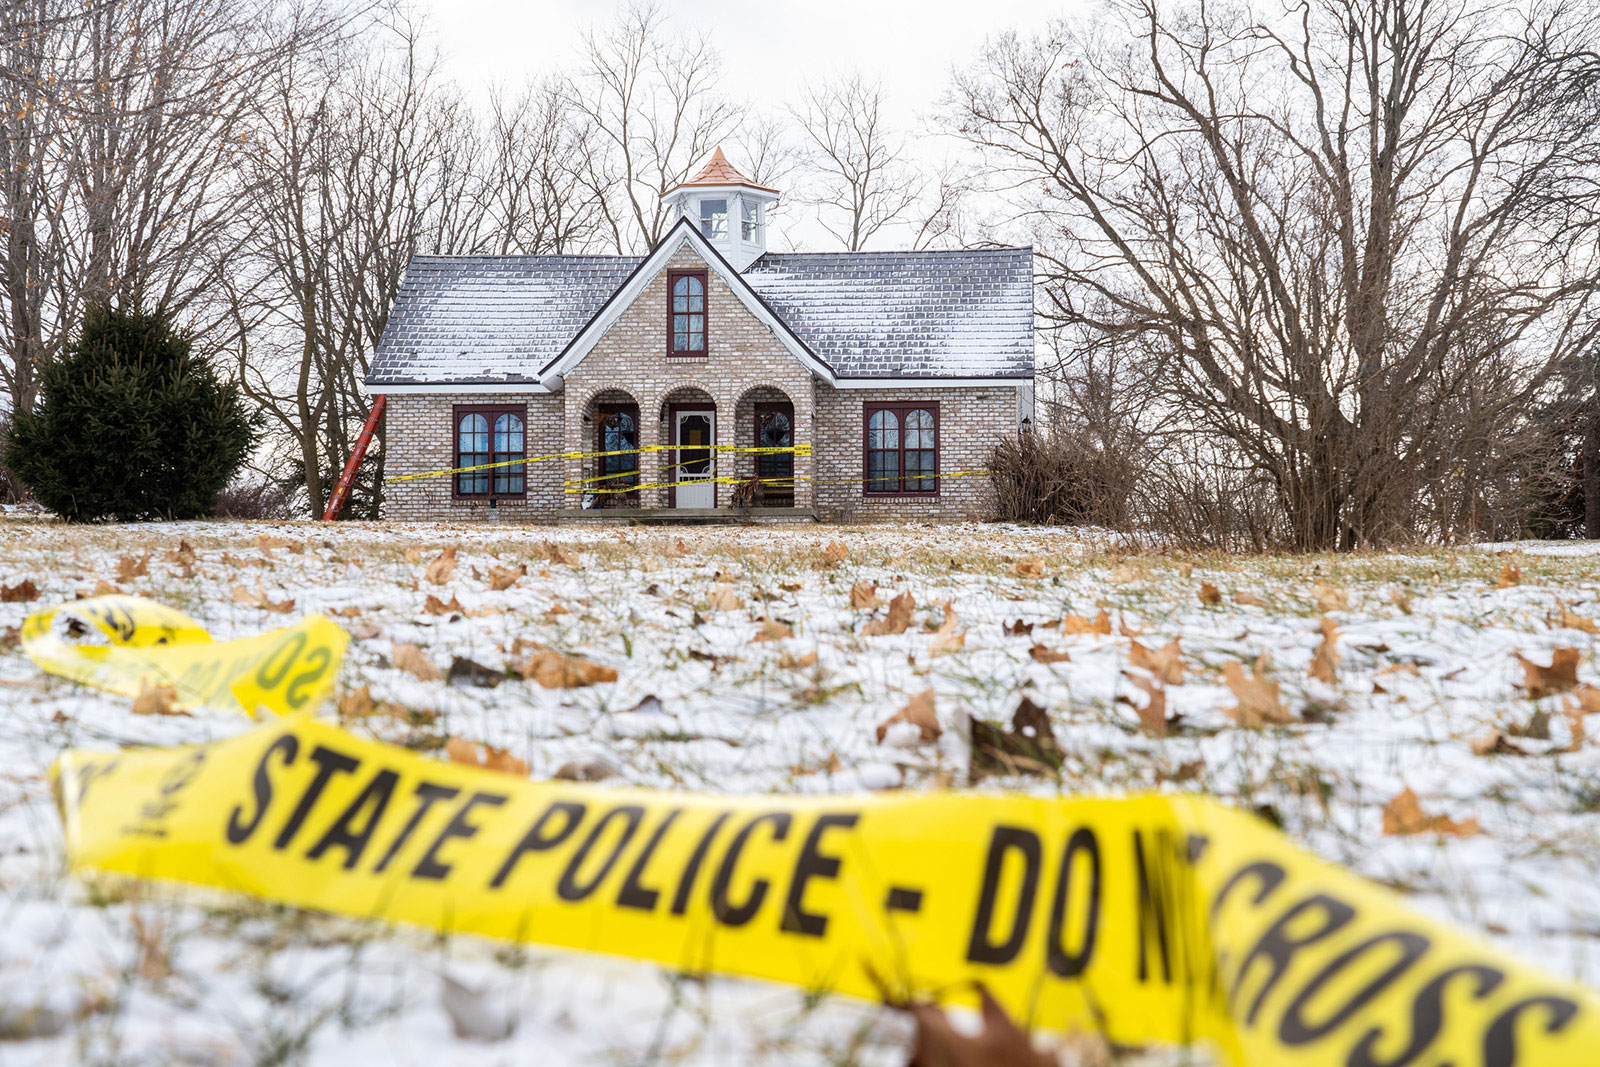 January 8, 2020, USA: Police tape remains around the home of Mark Latunski on Tyrell Rd. In Morrice, Michigan on Wednesday, January 8, 2020. Latunski is accused of killing and eating parts of his Grindr date, Kevin Bacon of Swartz Creek, at Latunski's home in Bennington Township. (Credit Image: © TNS via ZUMA Wire)